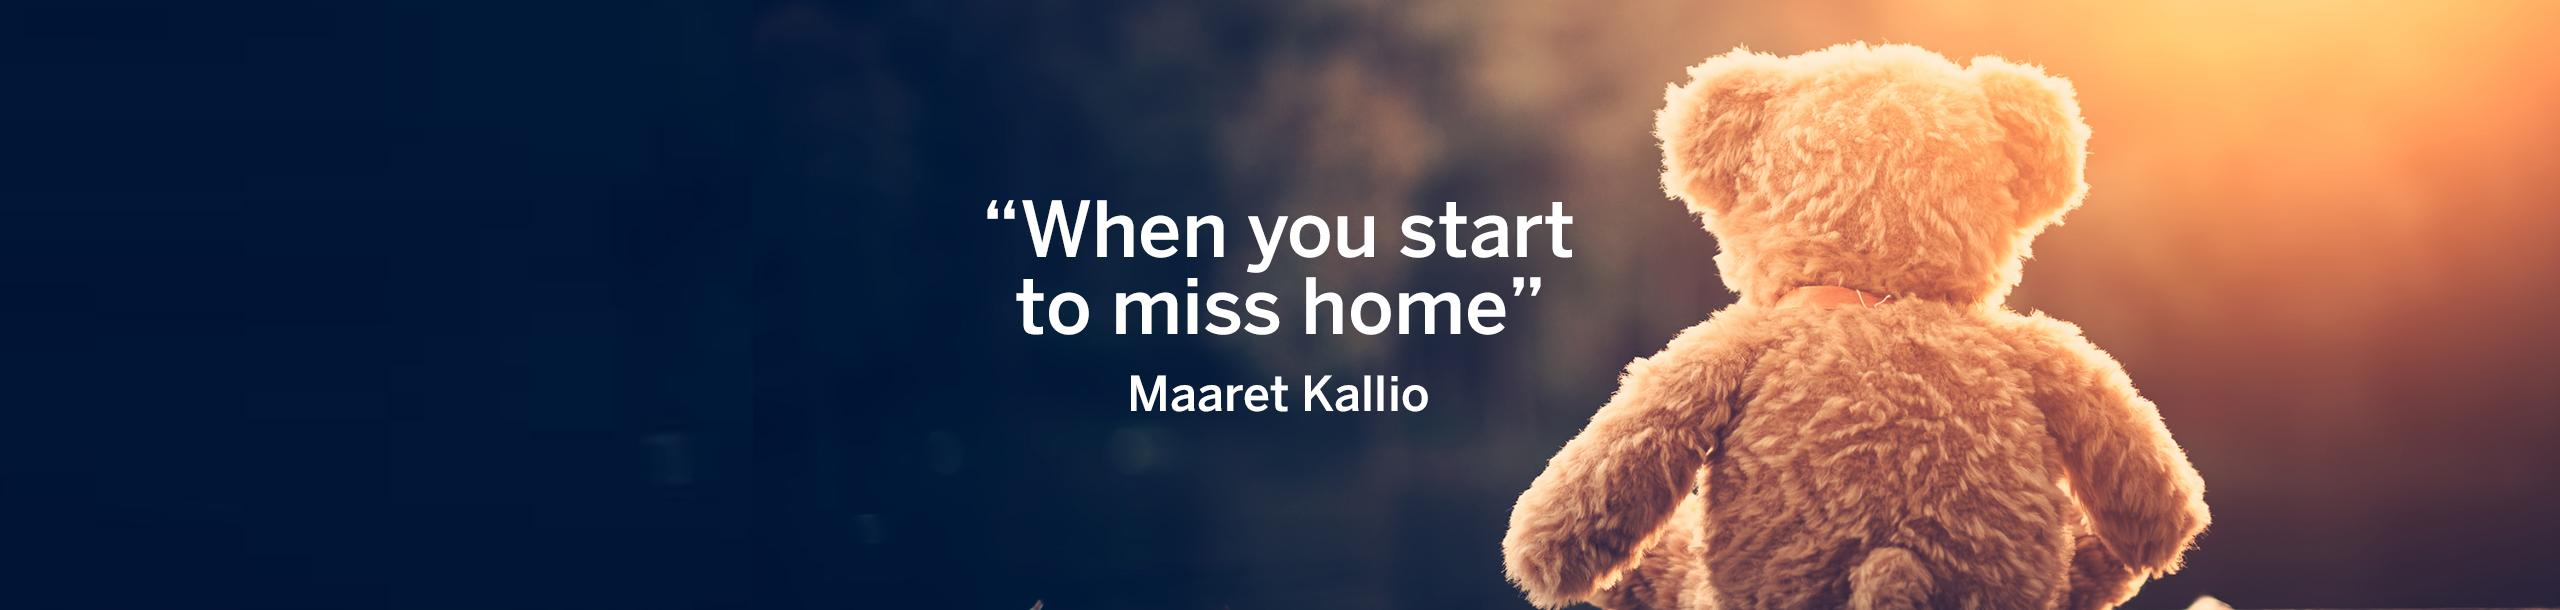 When-you-start-to-miss-home